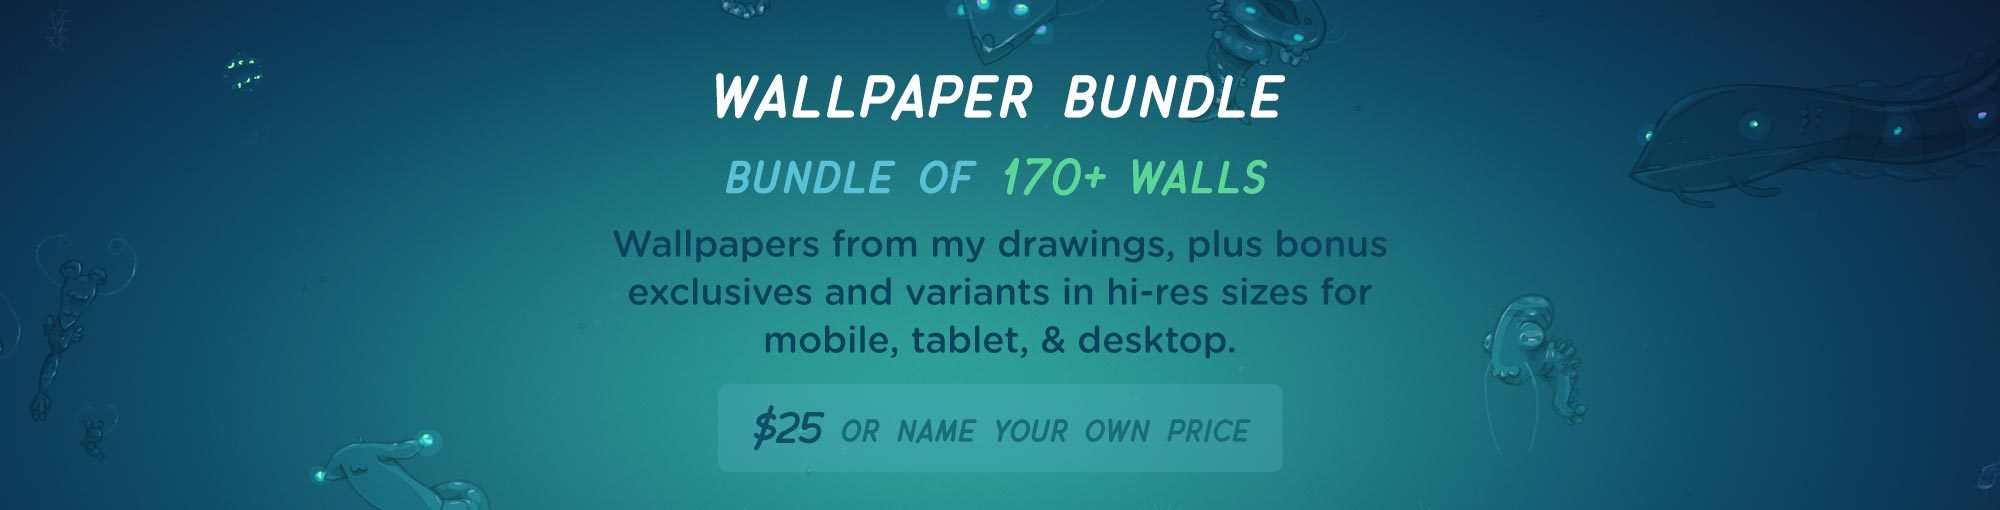 Wallpaper Bundle